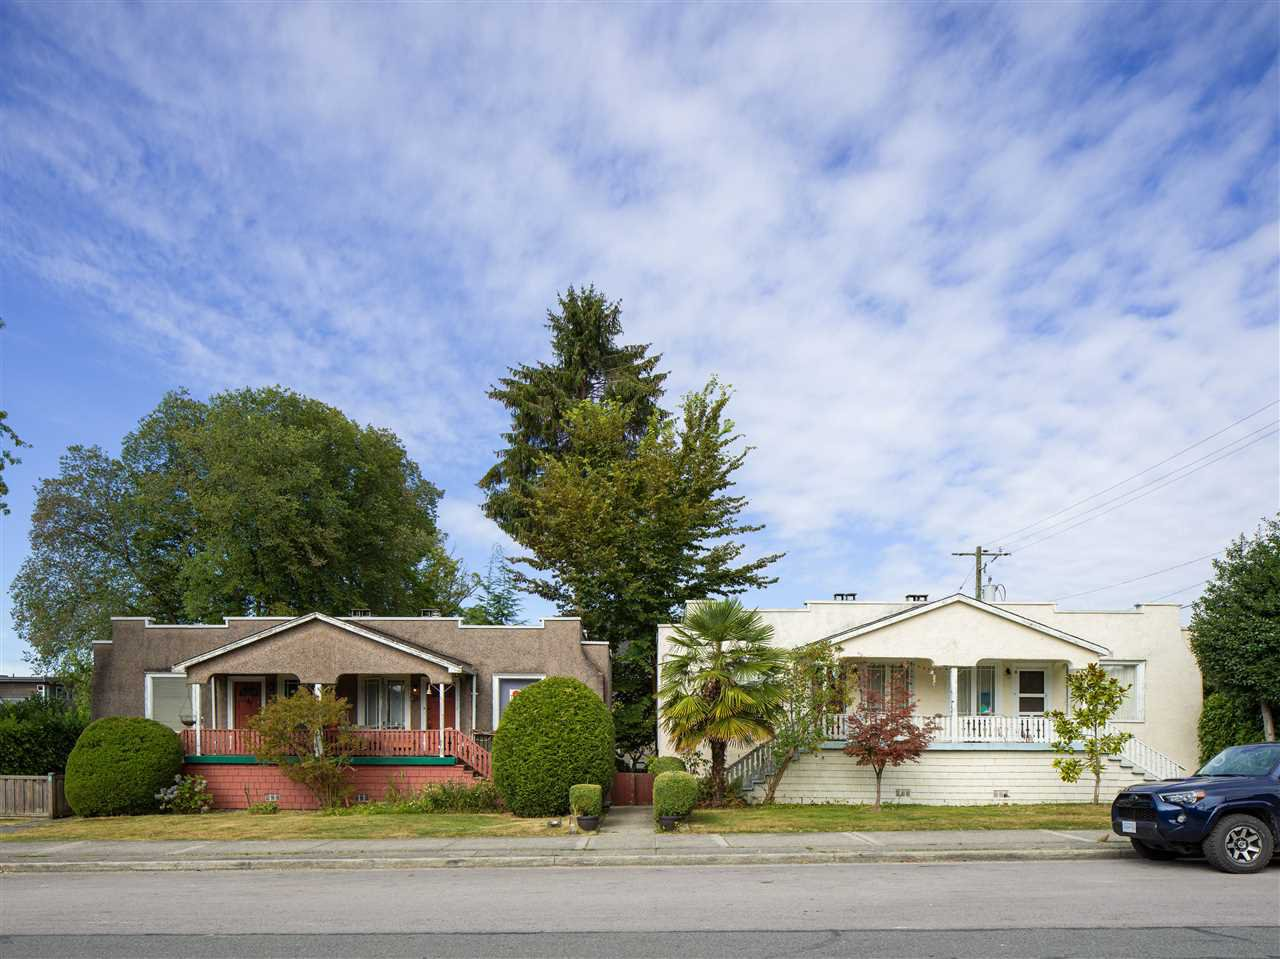 "Main Photo: 1155 MAPLE Street in Vancouver: Kitsilano Fourplex for sale in ""KITS POINT"" (Vancouver West)  : MLS®# R2456628"